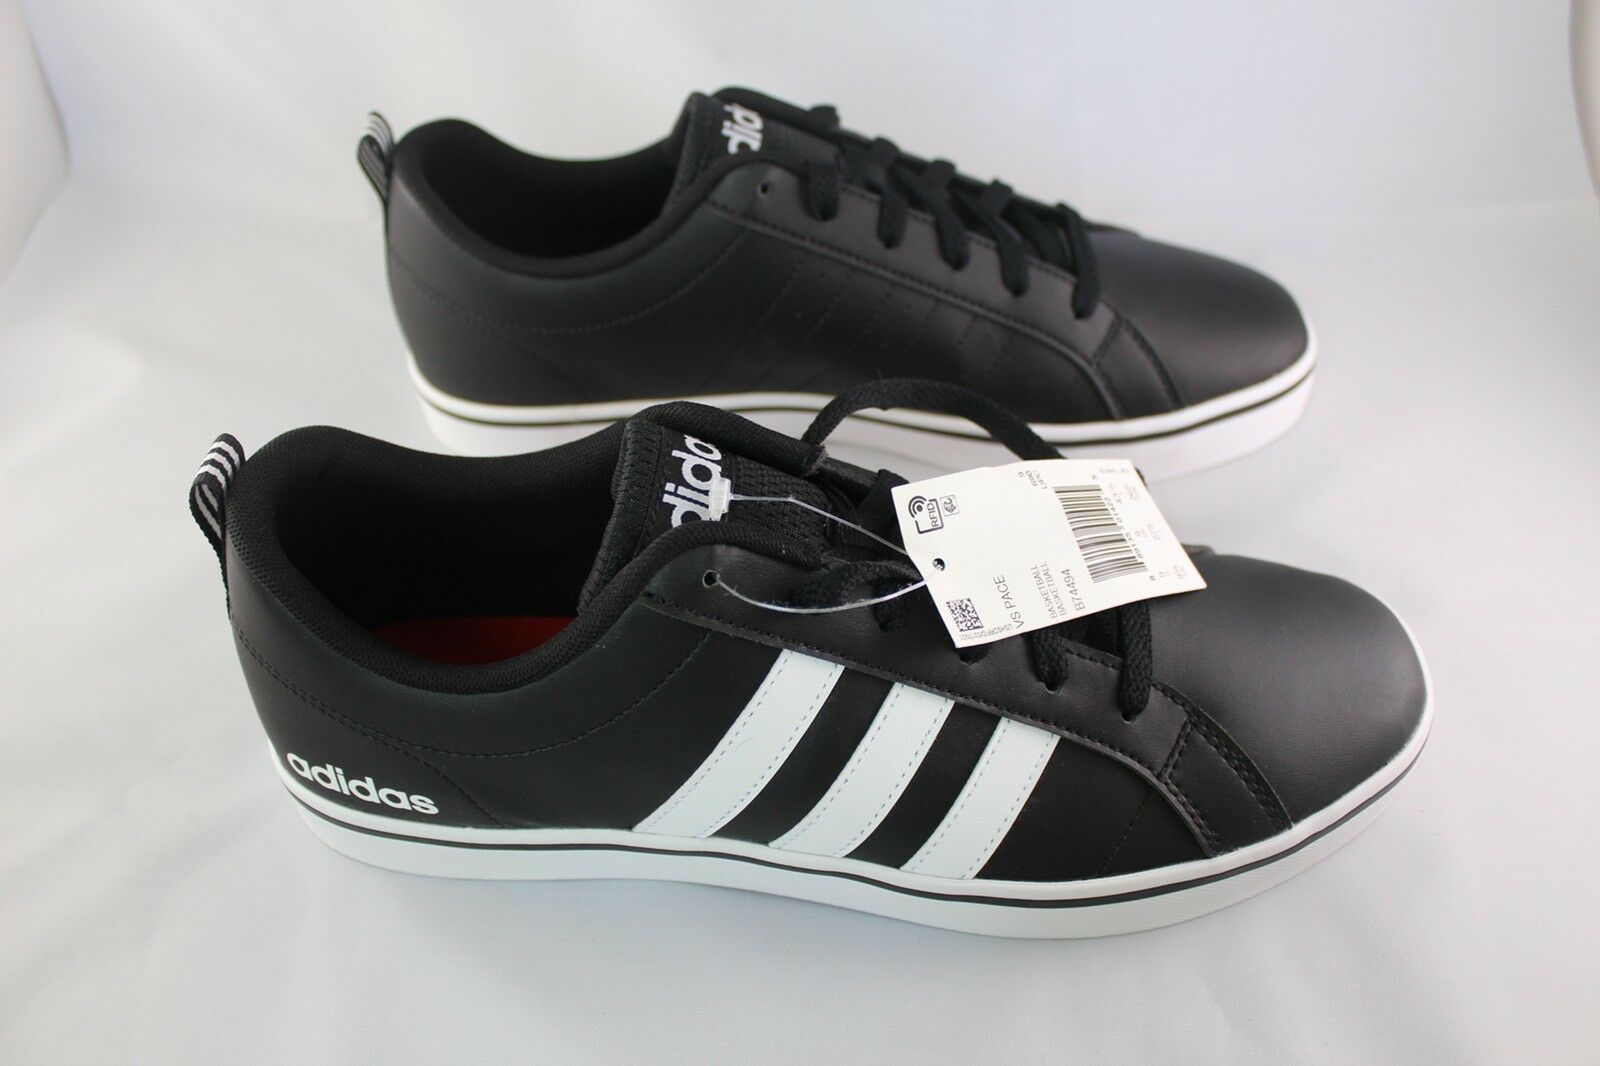 ADIDAS MEN'S SIZE 10 Vs PACE SNEAKER BRAND NEW